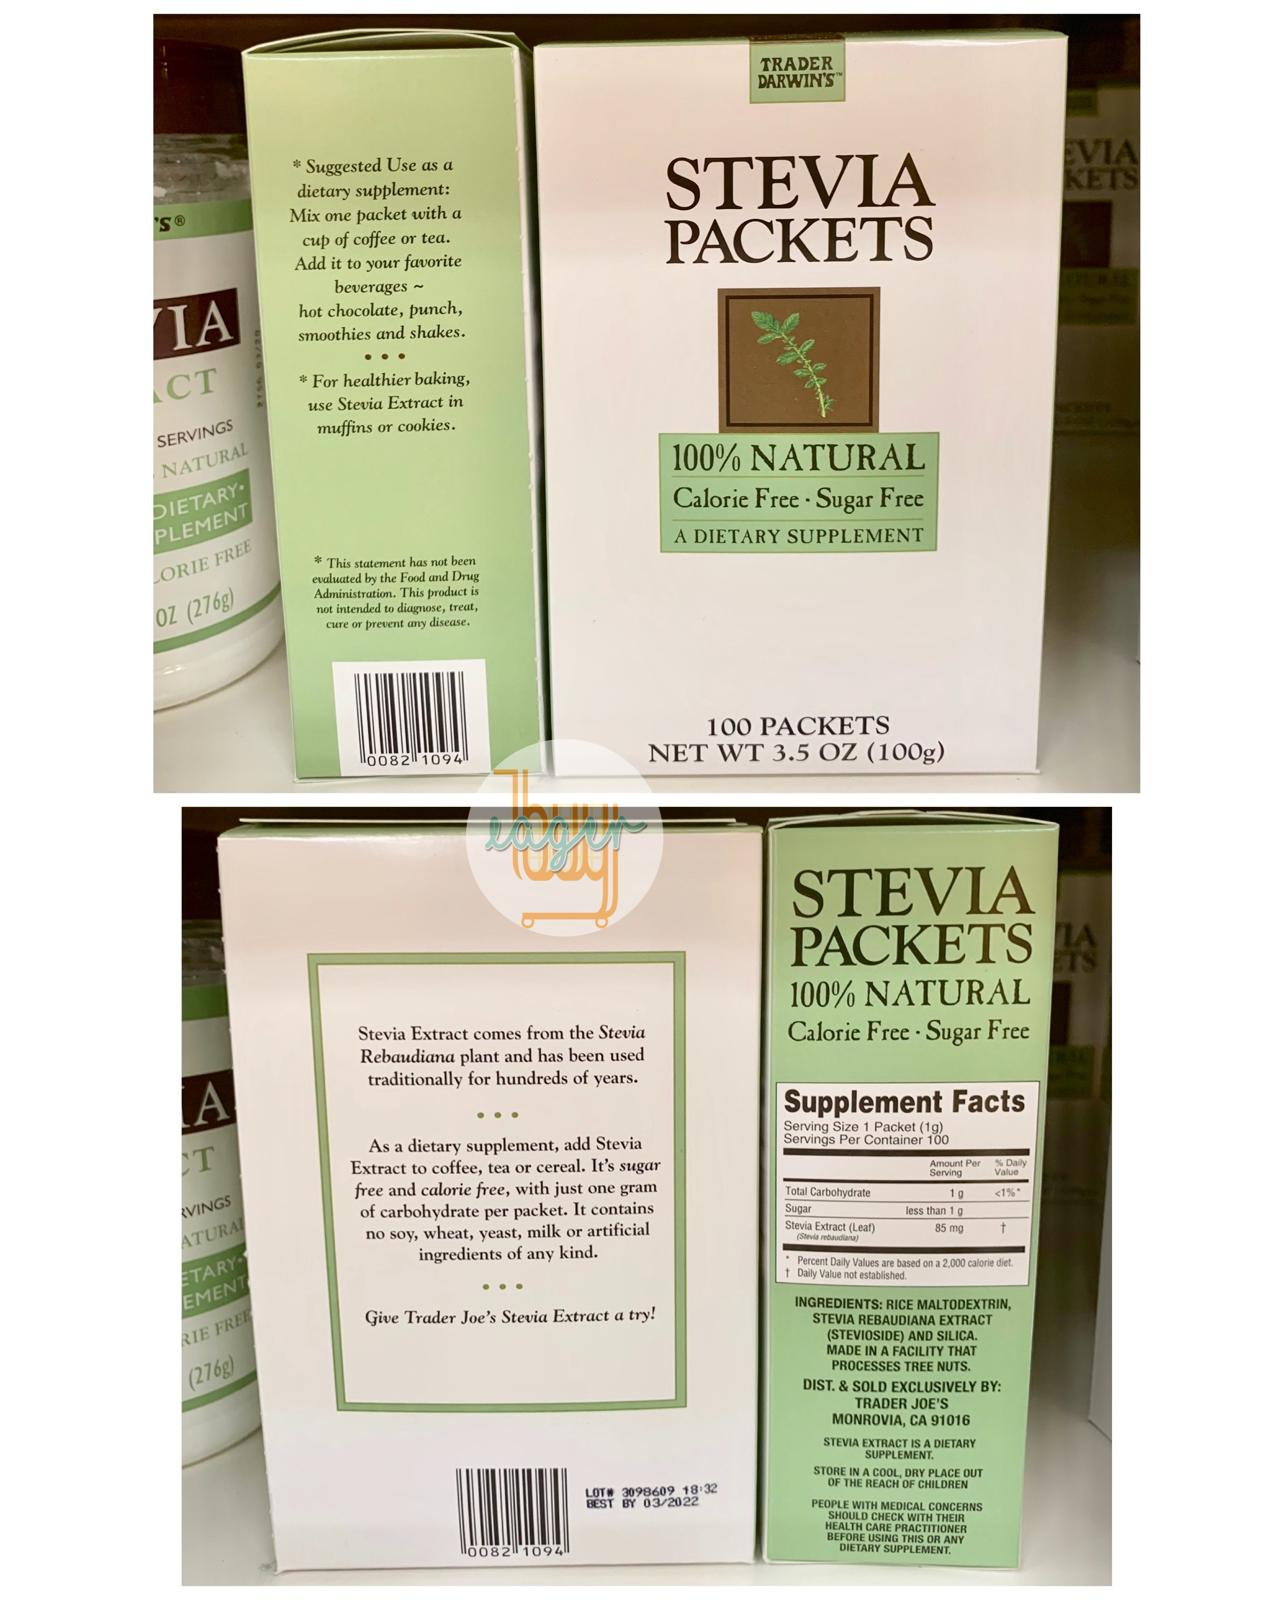 TRADER JOE'S - 100% Natural Stevia - 100 Packets